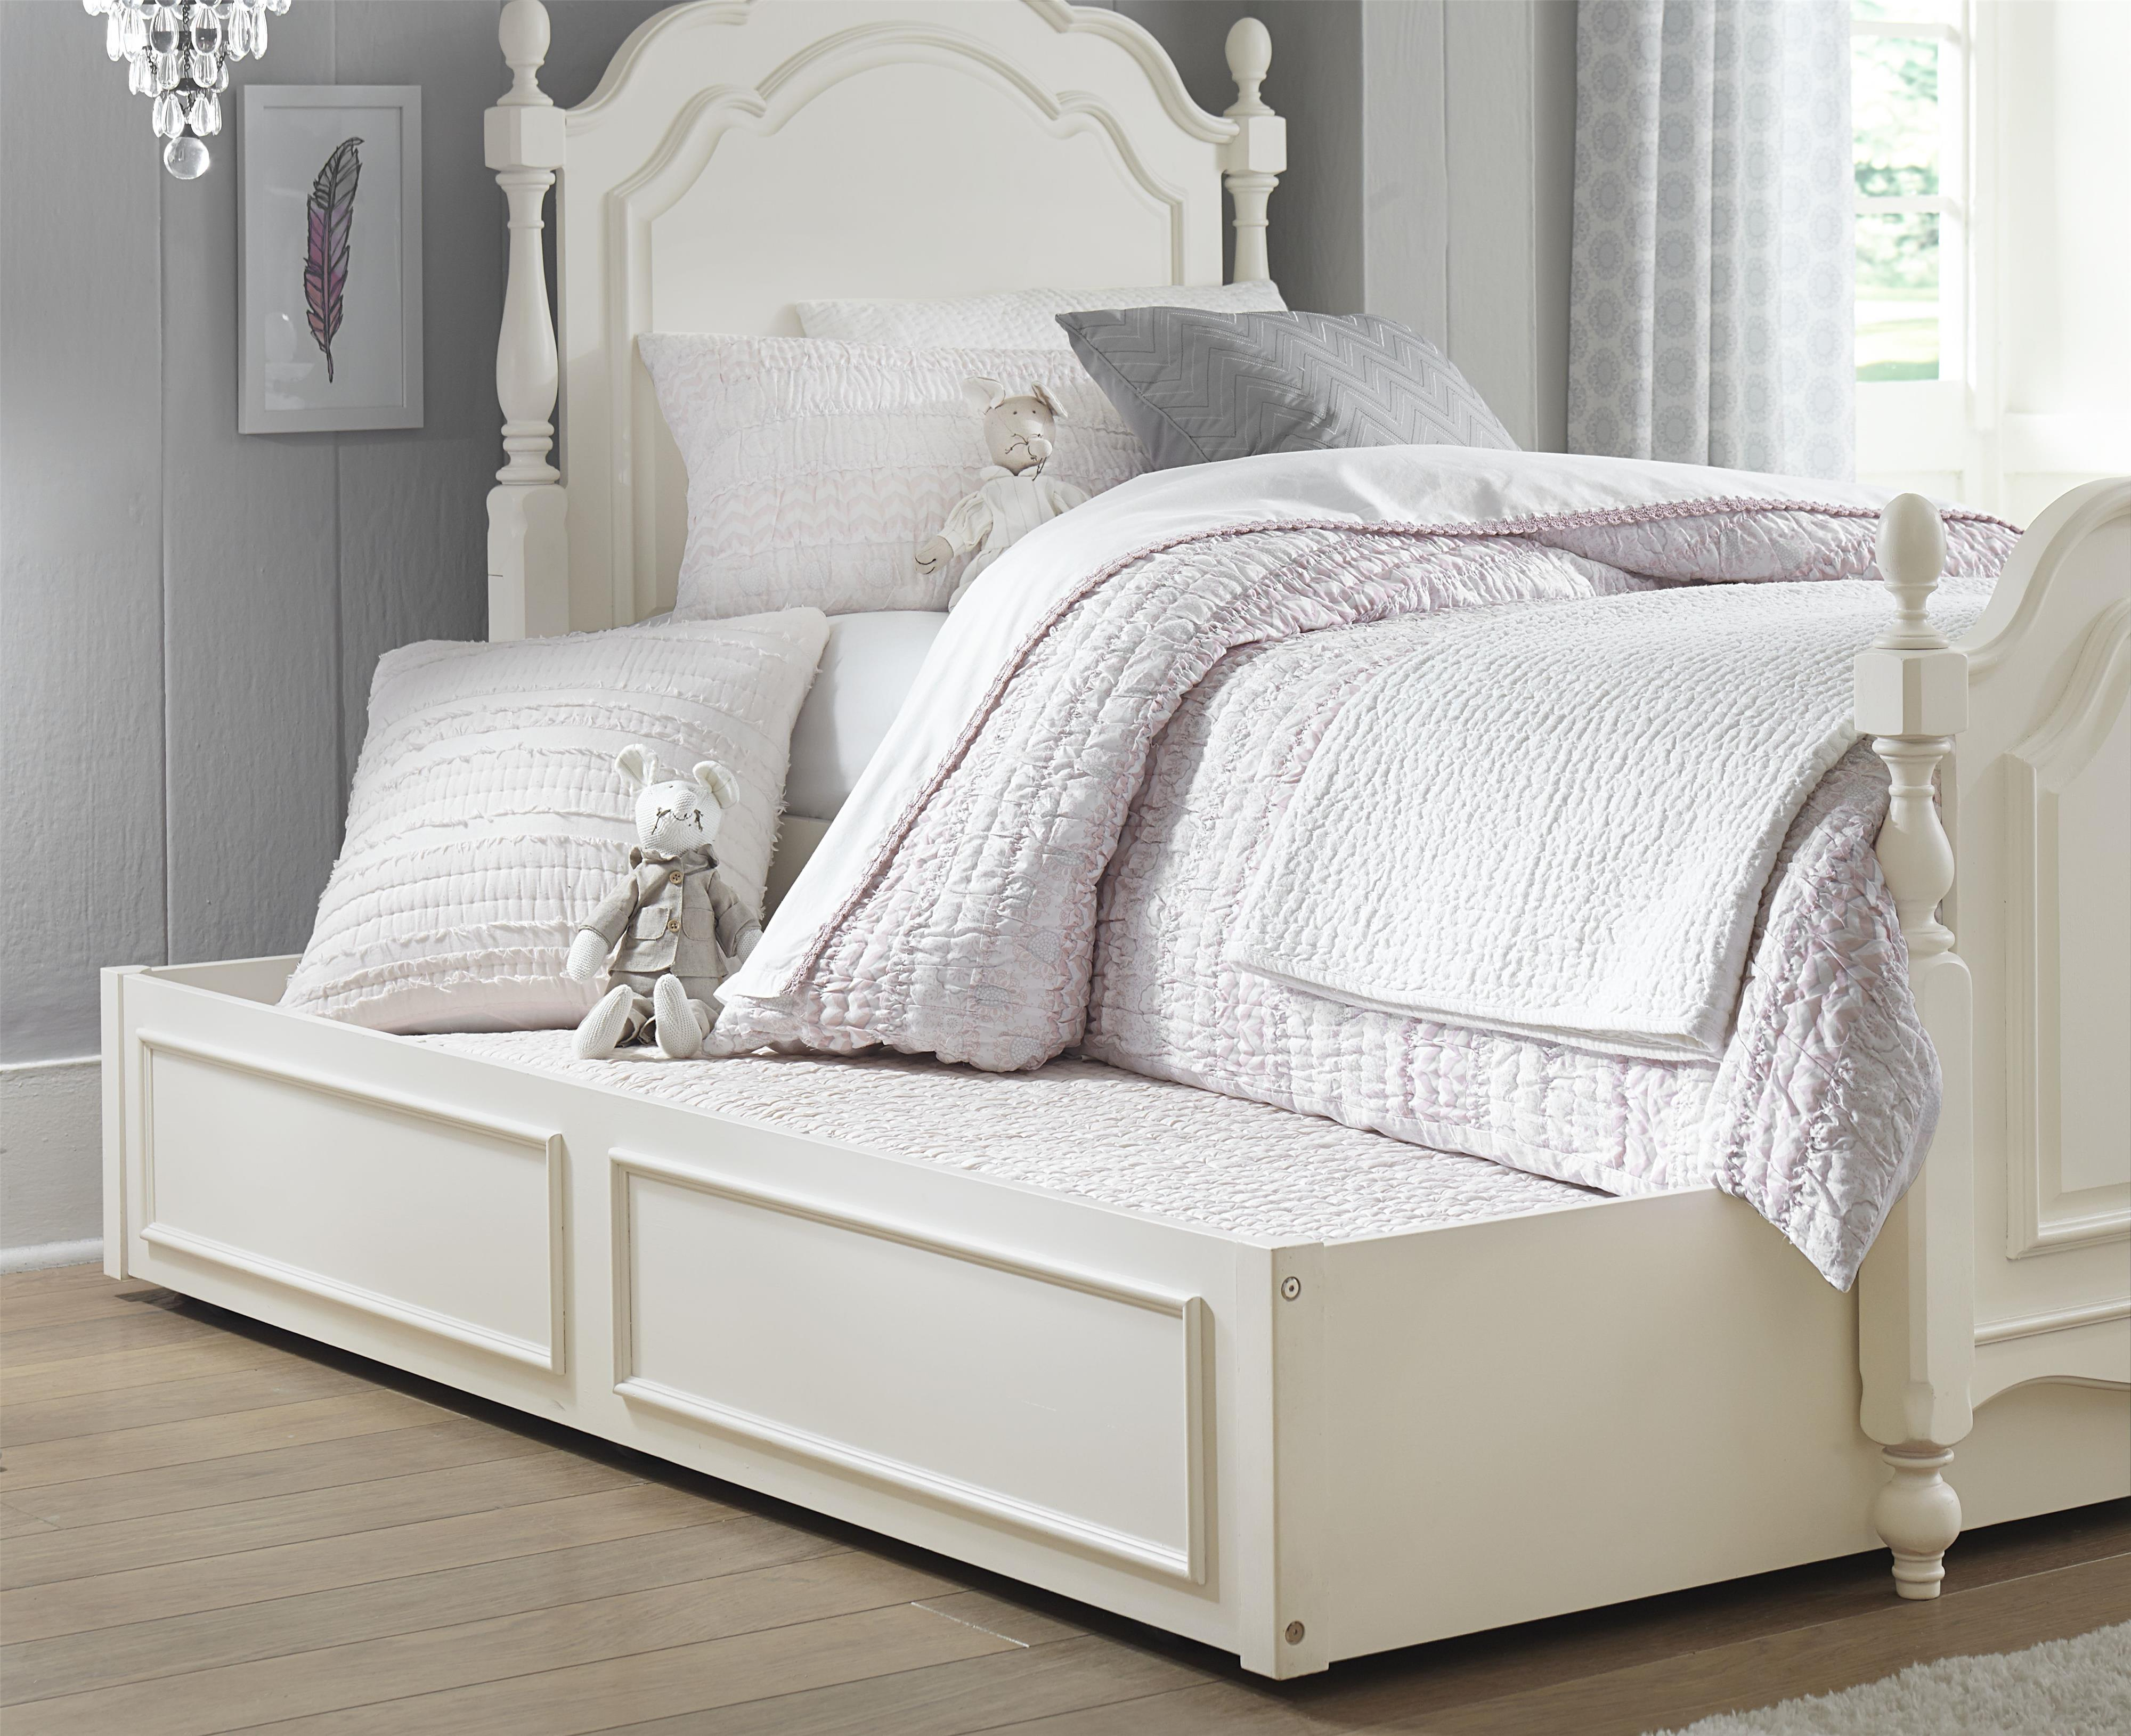 Legacy Classic Kids Harmony Summerset Low Poster Twin Bed with Trundle - Item Number: 4910-4103K+9500